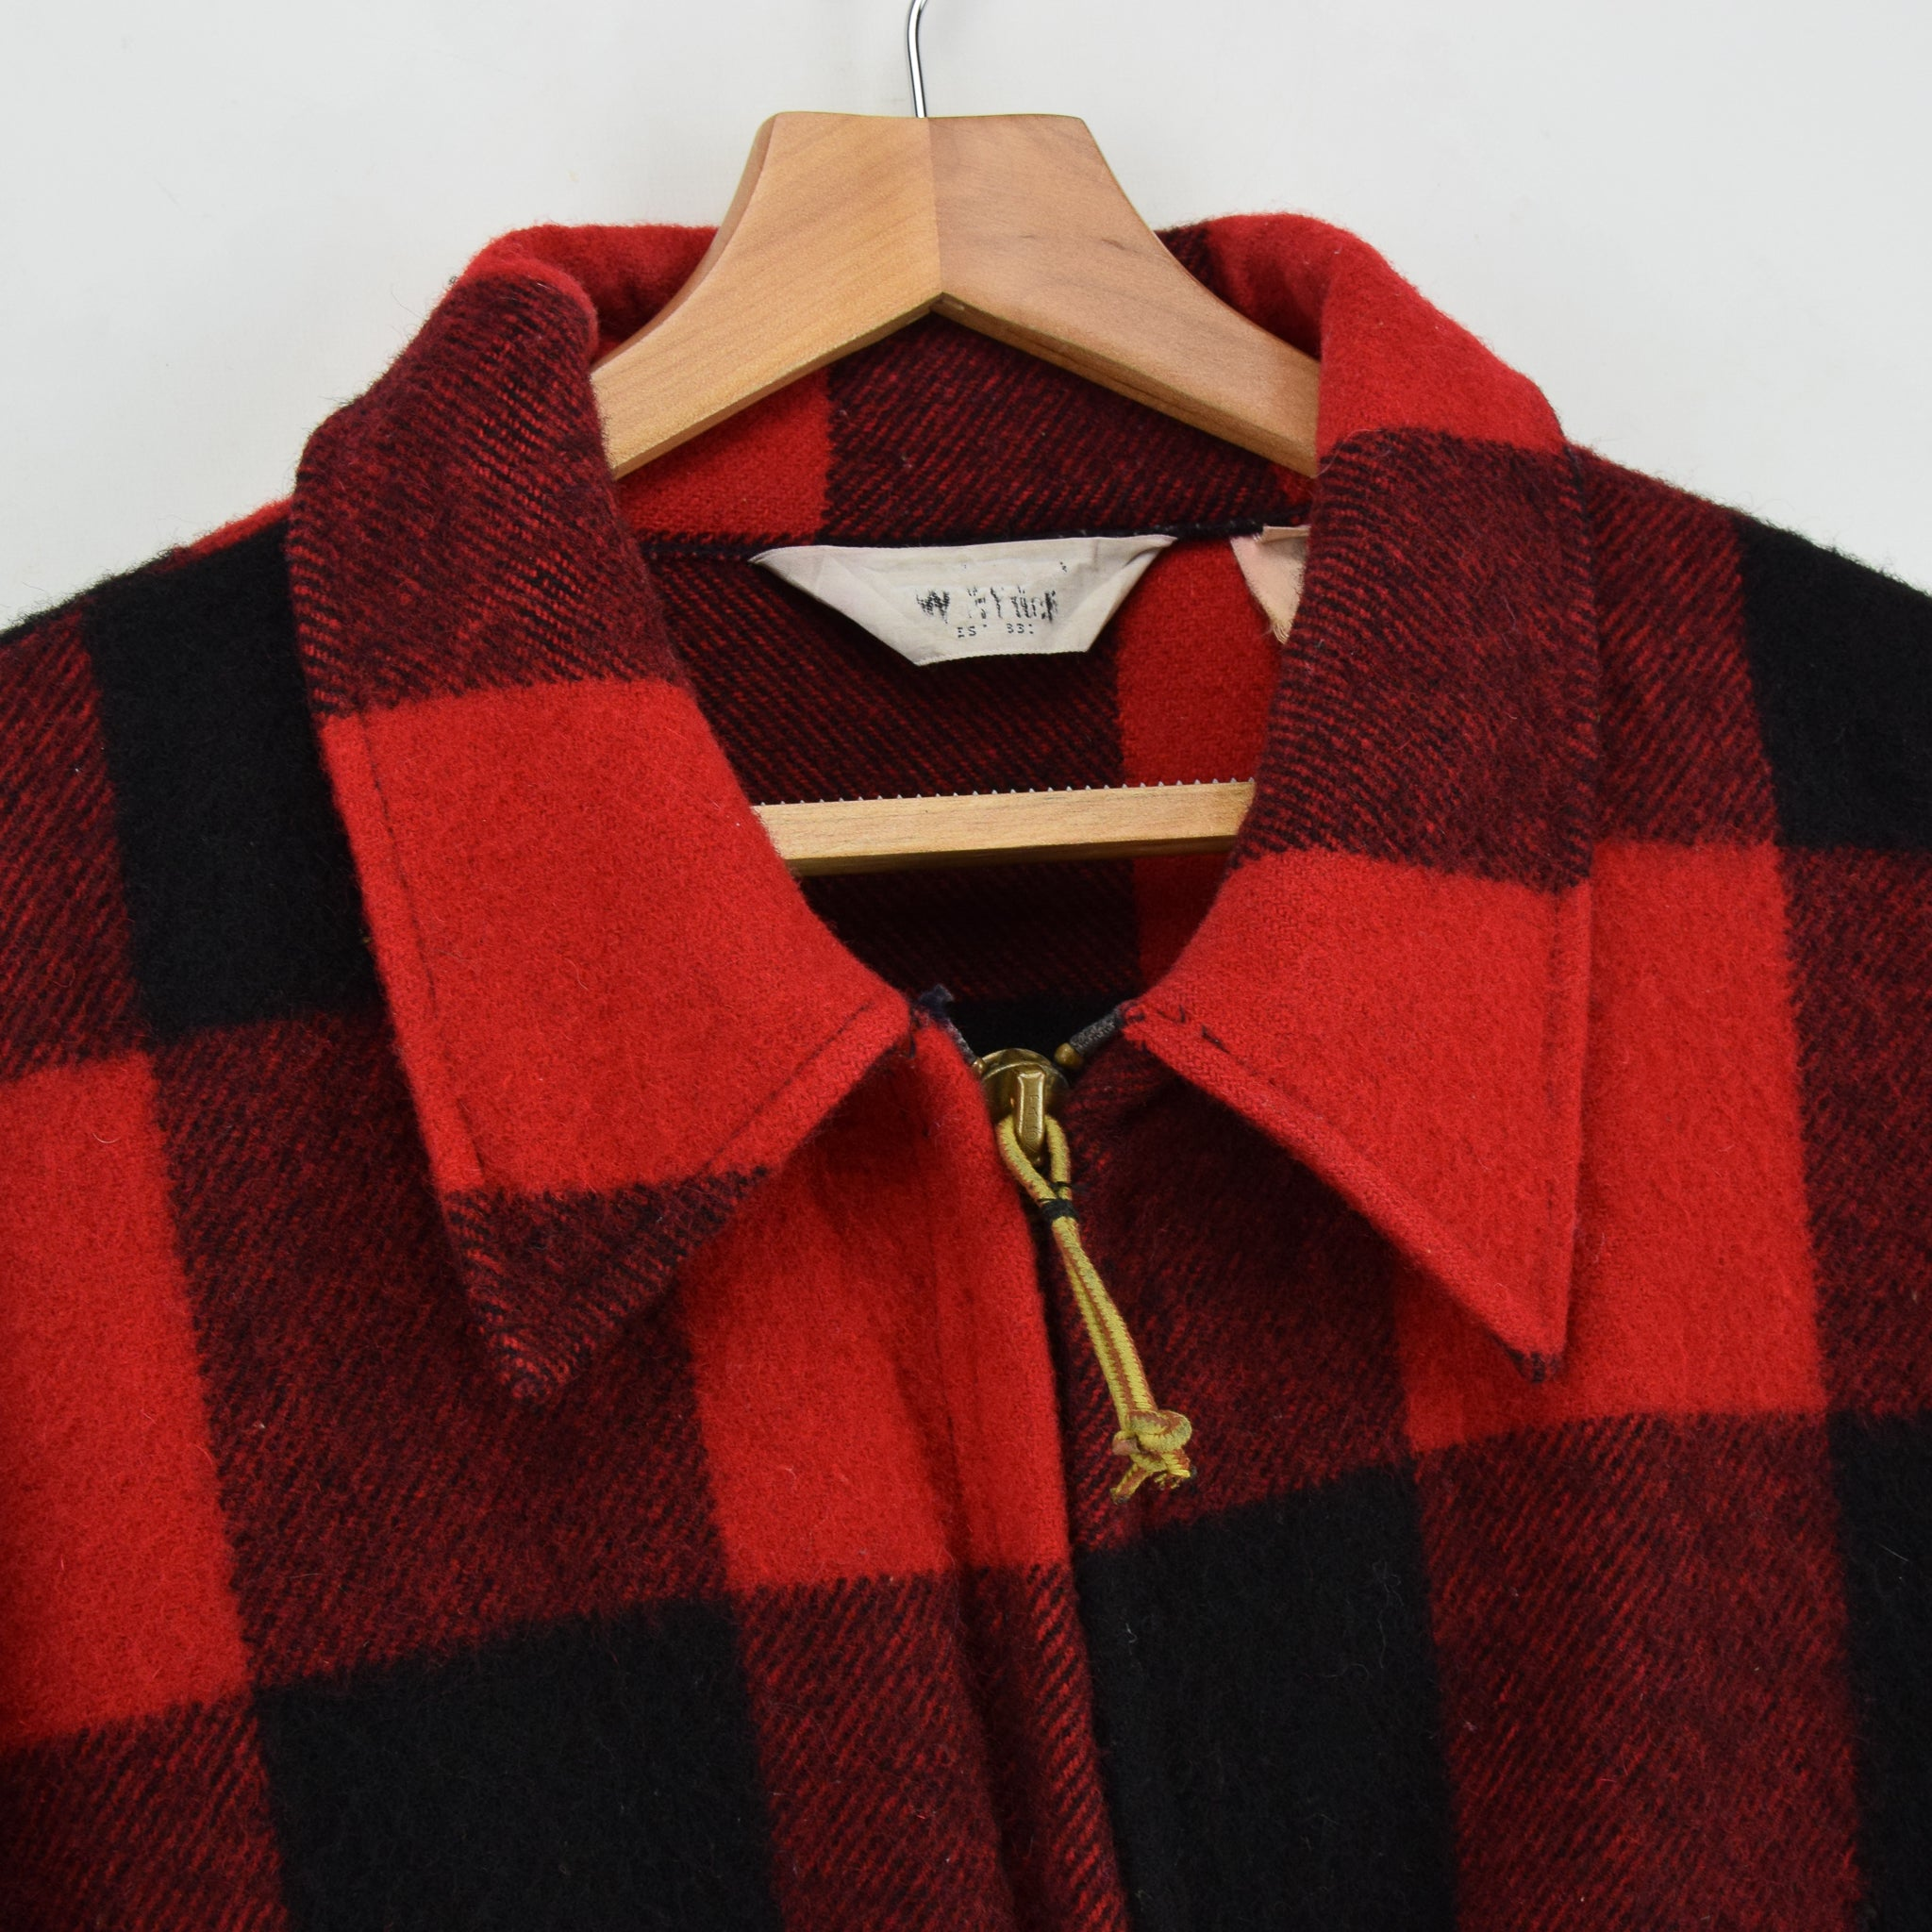 Vintage 70s Woolrich Buffalo Plaid Hunting Mackinaw Shirt Jacket Made in USA XXL collar